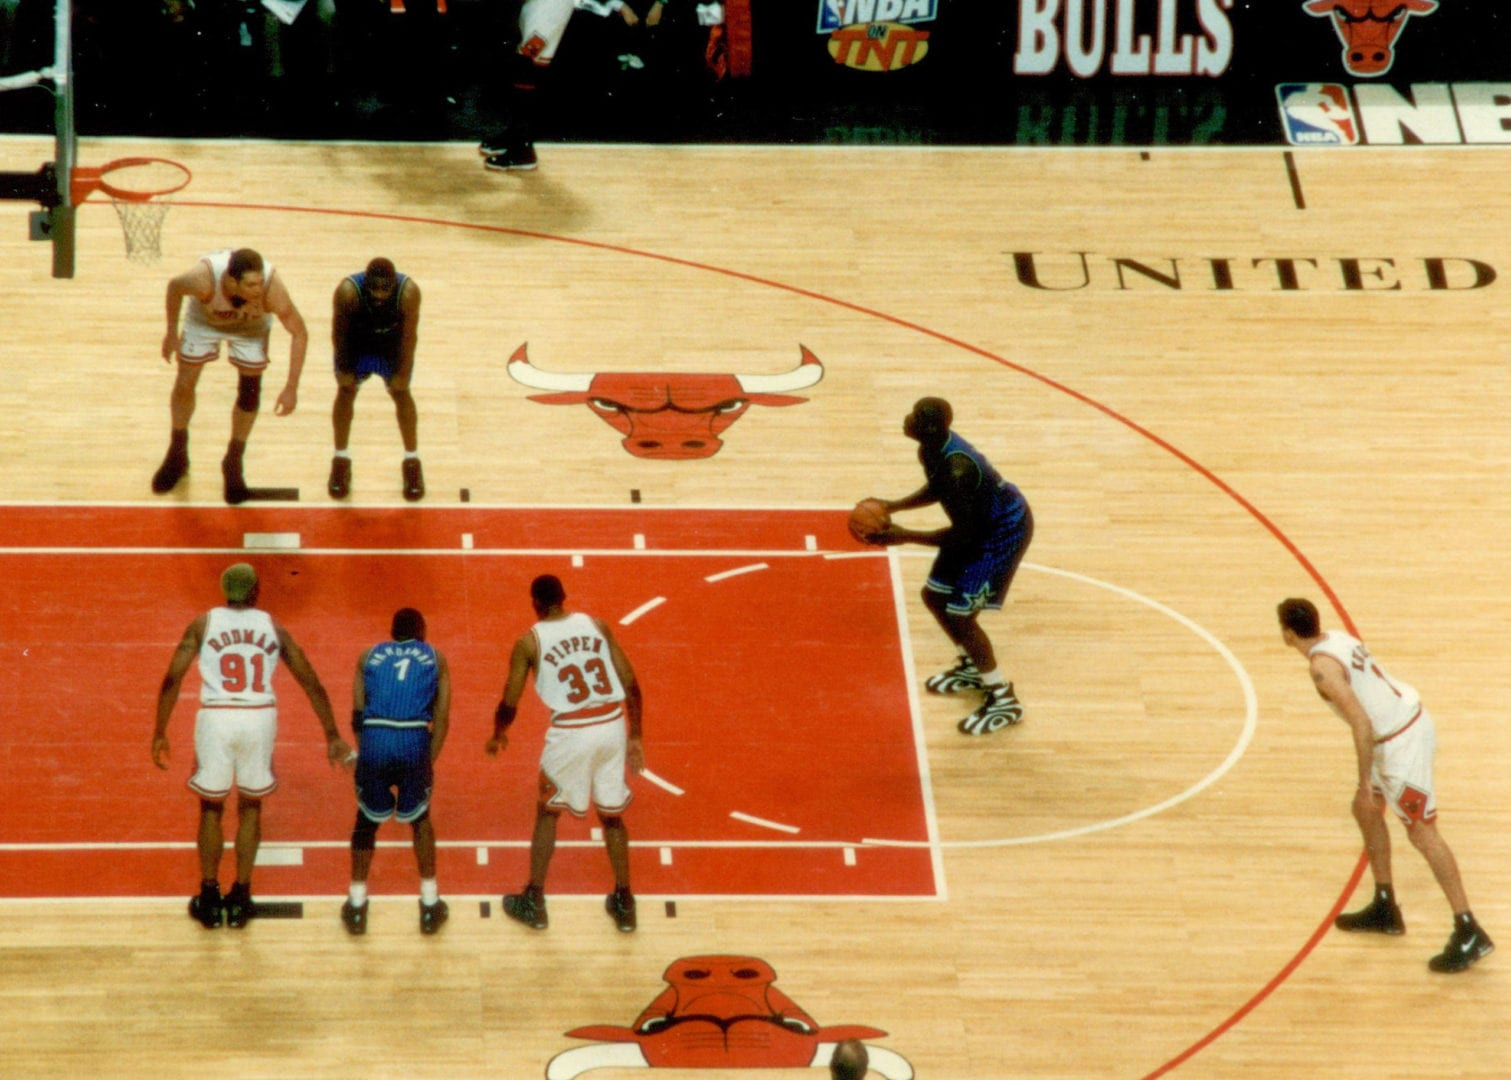 Shaquille O'Neal with his free throw